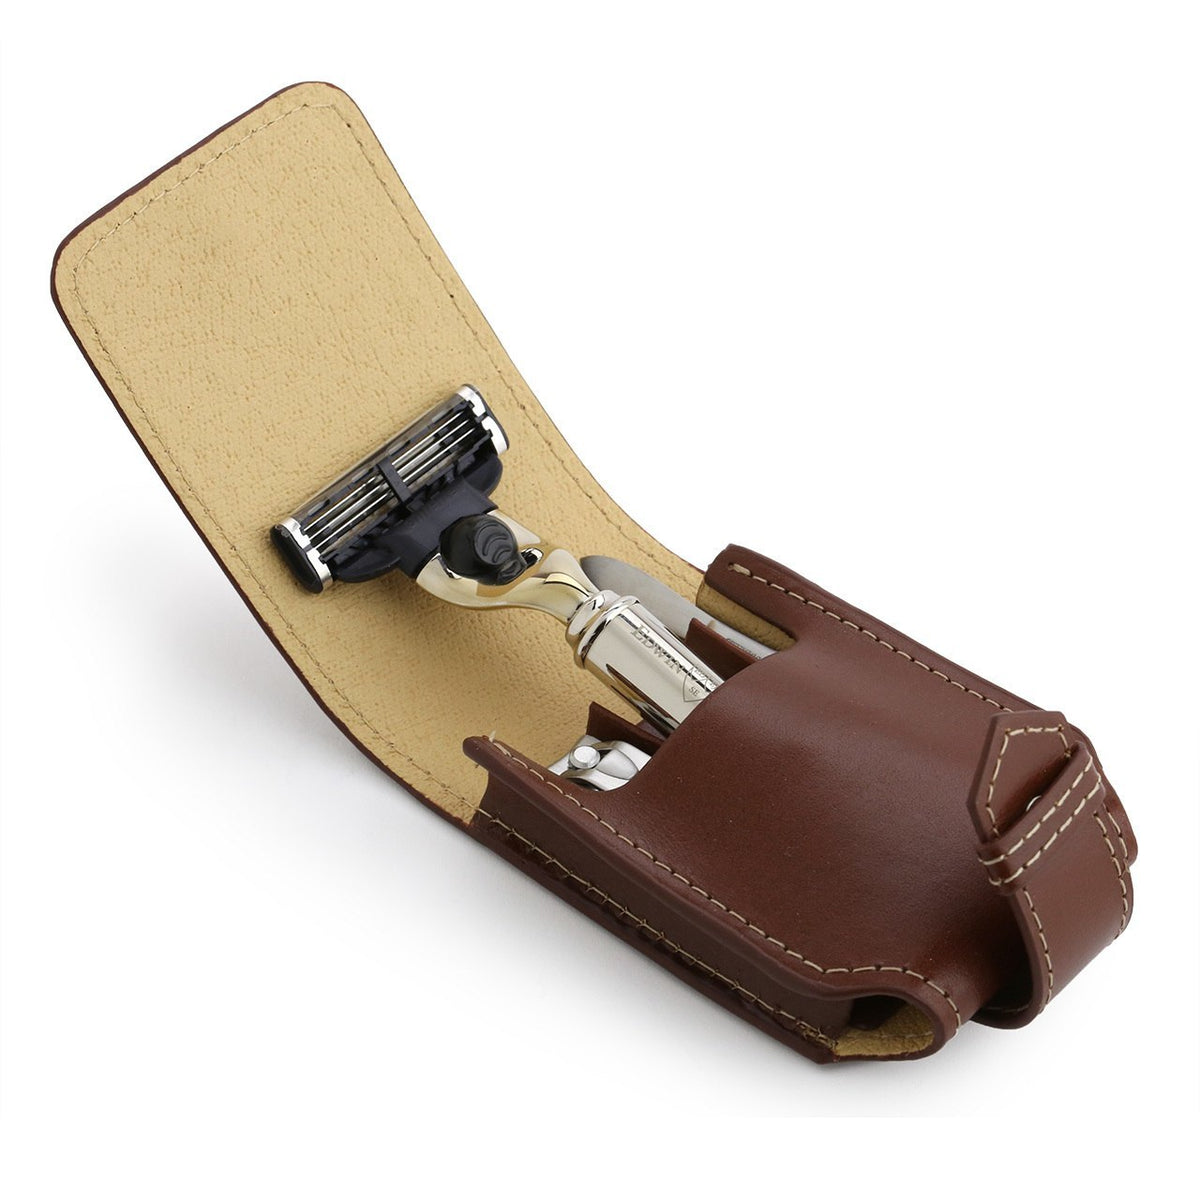 Edwin Jagger Mach 3 Travel Set - Brown